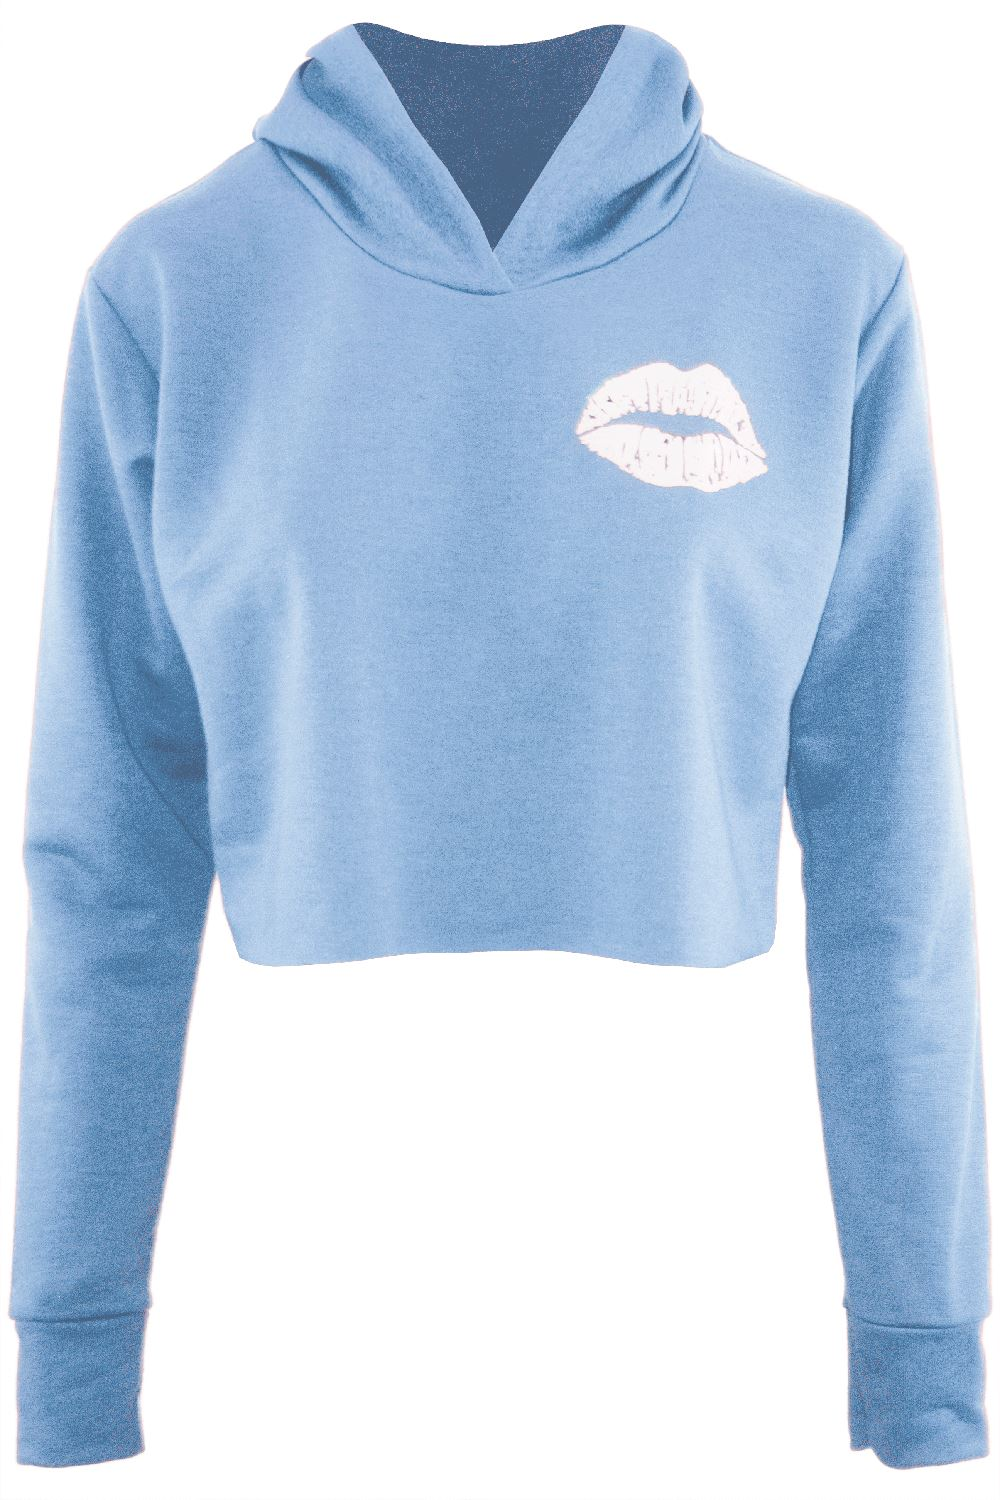 d6cc5373ab Womens Ladies Sweatshirt Cute Lips Hooded Fleece Oversized Long ...